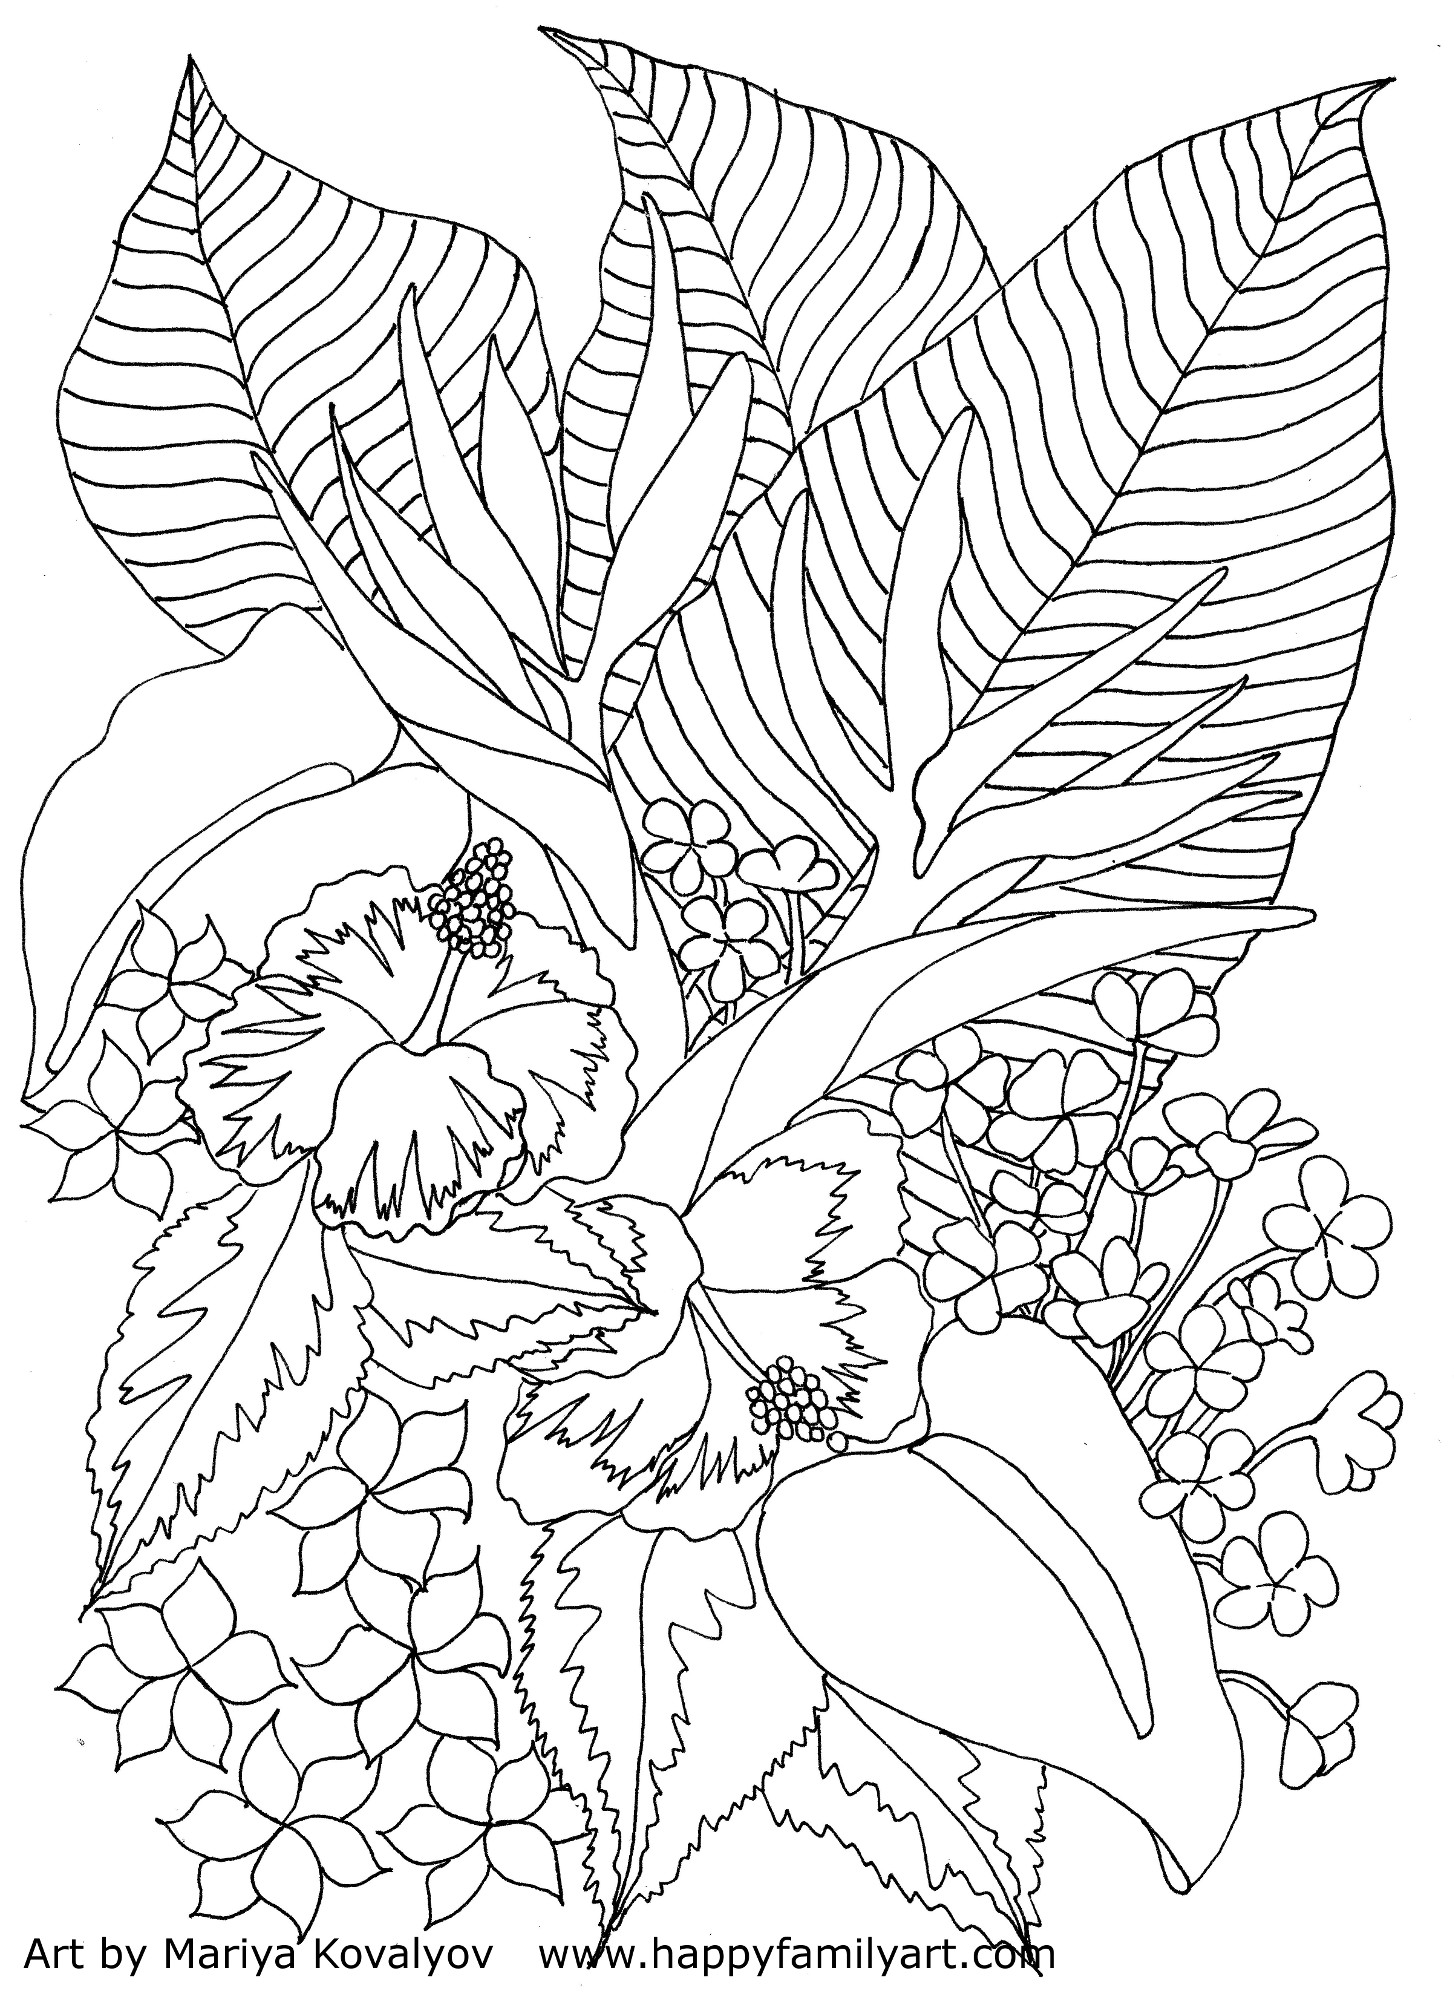 coloring pages of bladderworts plants - photo#6